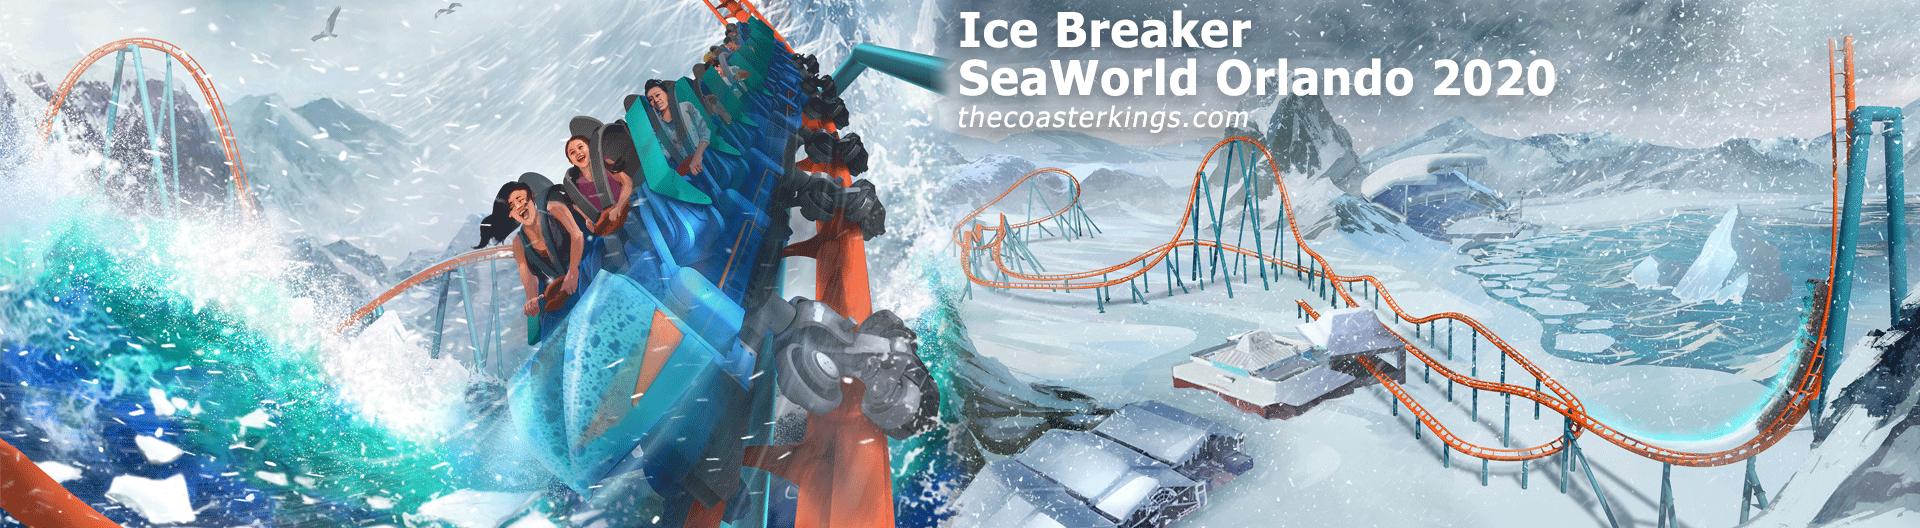 Ice Breaker Featured Image